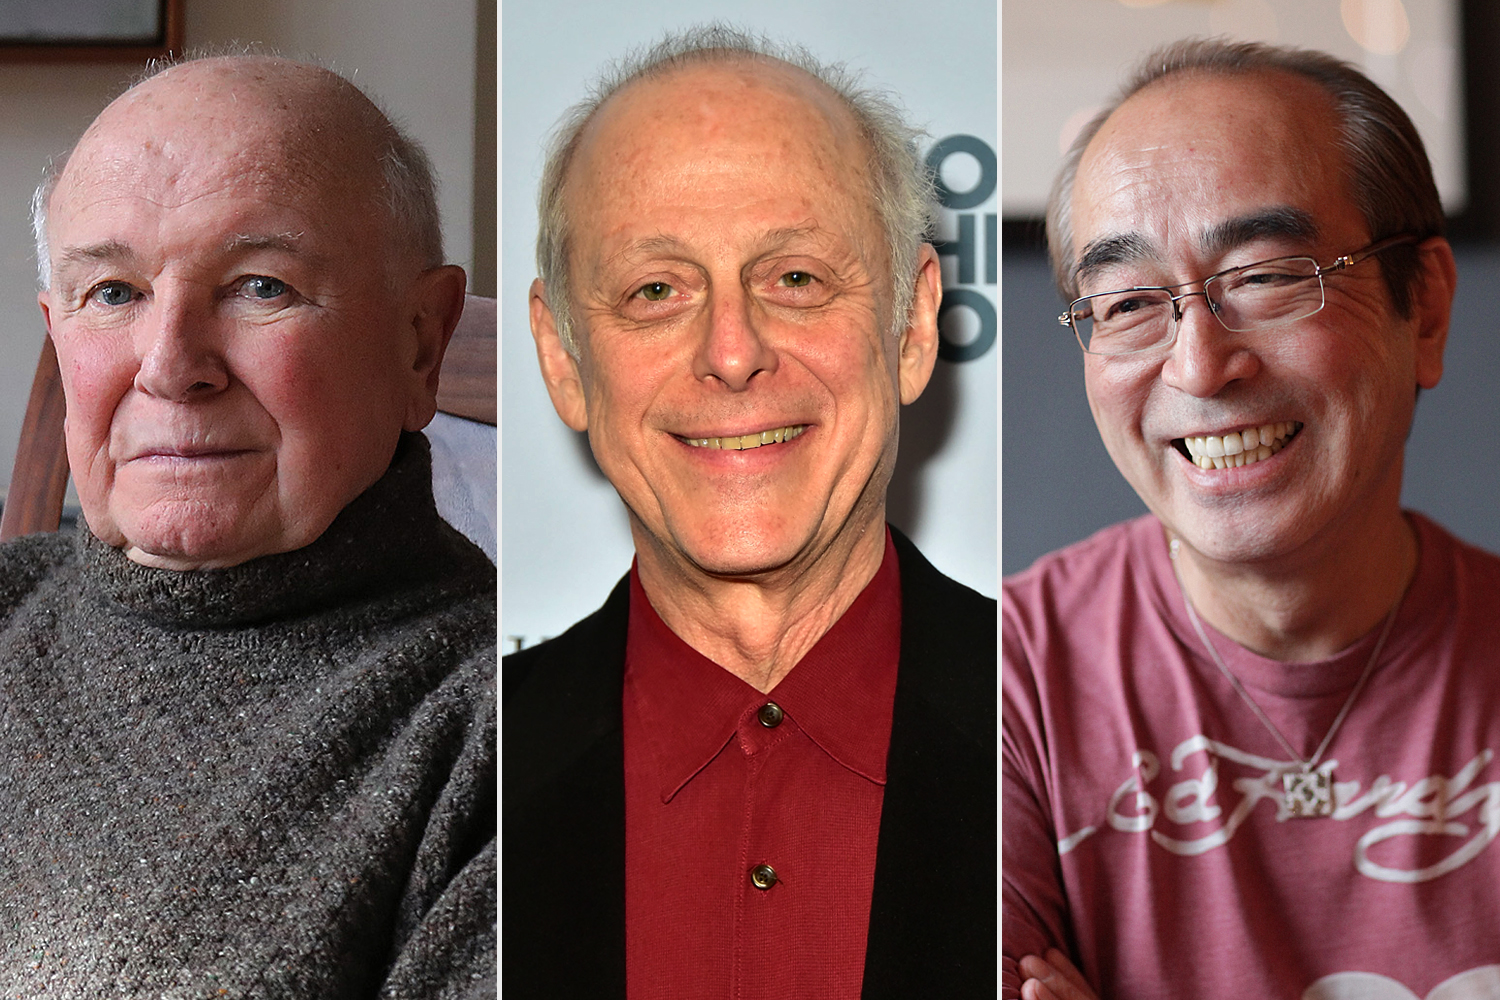 Terrence McNally; Mark Blum; Ken Shimura